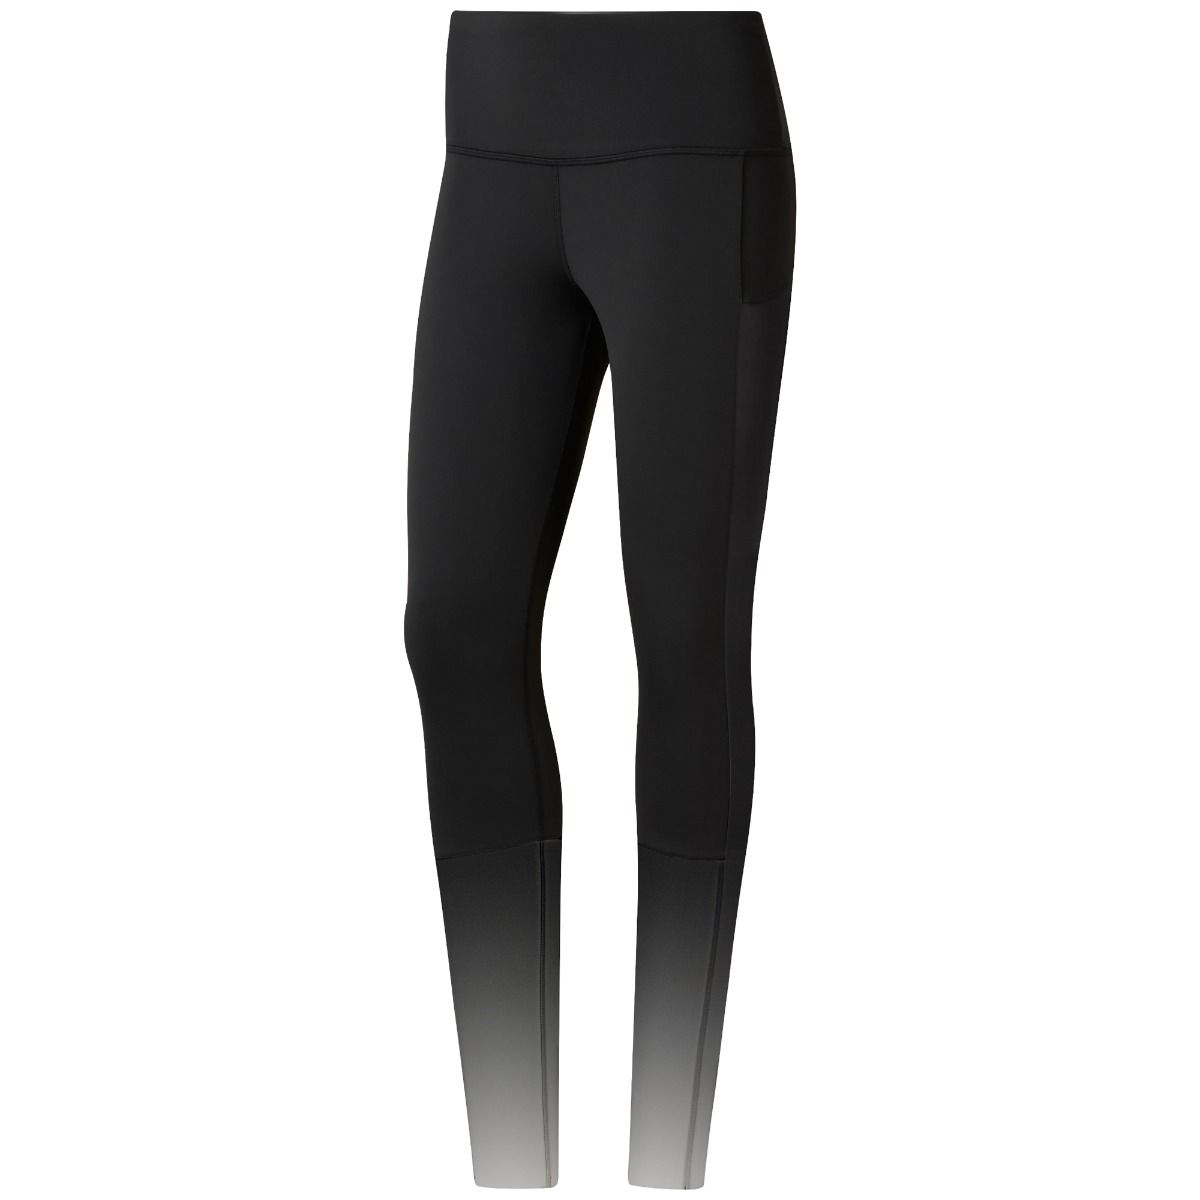 3eee3fdb Reebok Y Ombre Tight - Sort - se pris | X-Life.no